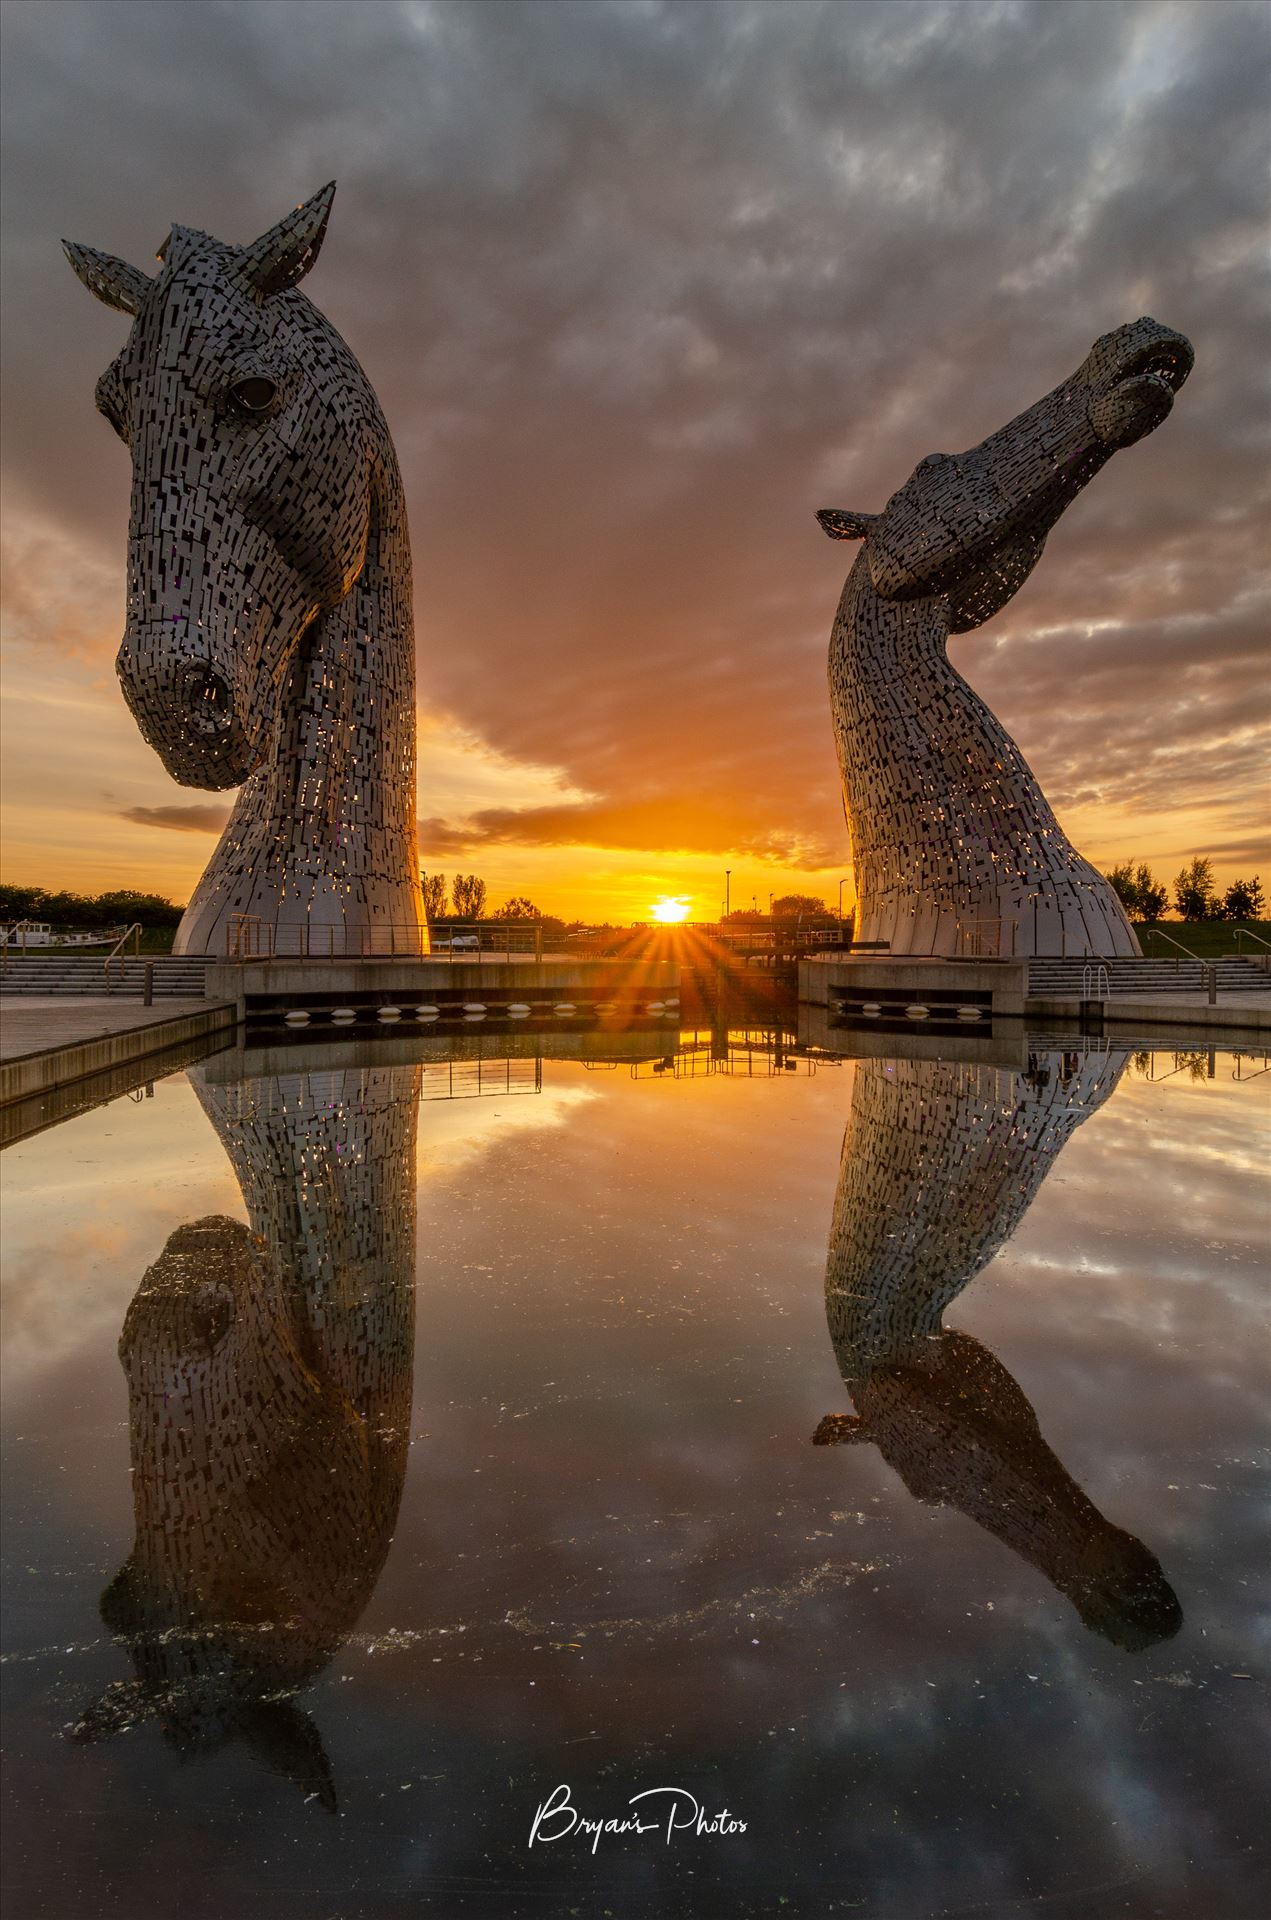 Sunset at the Kelpies A photograph of the Kelpies taken as the sun sets in between them. by Bryans Photos